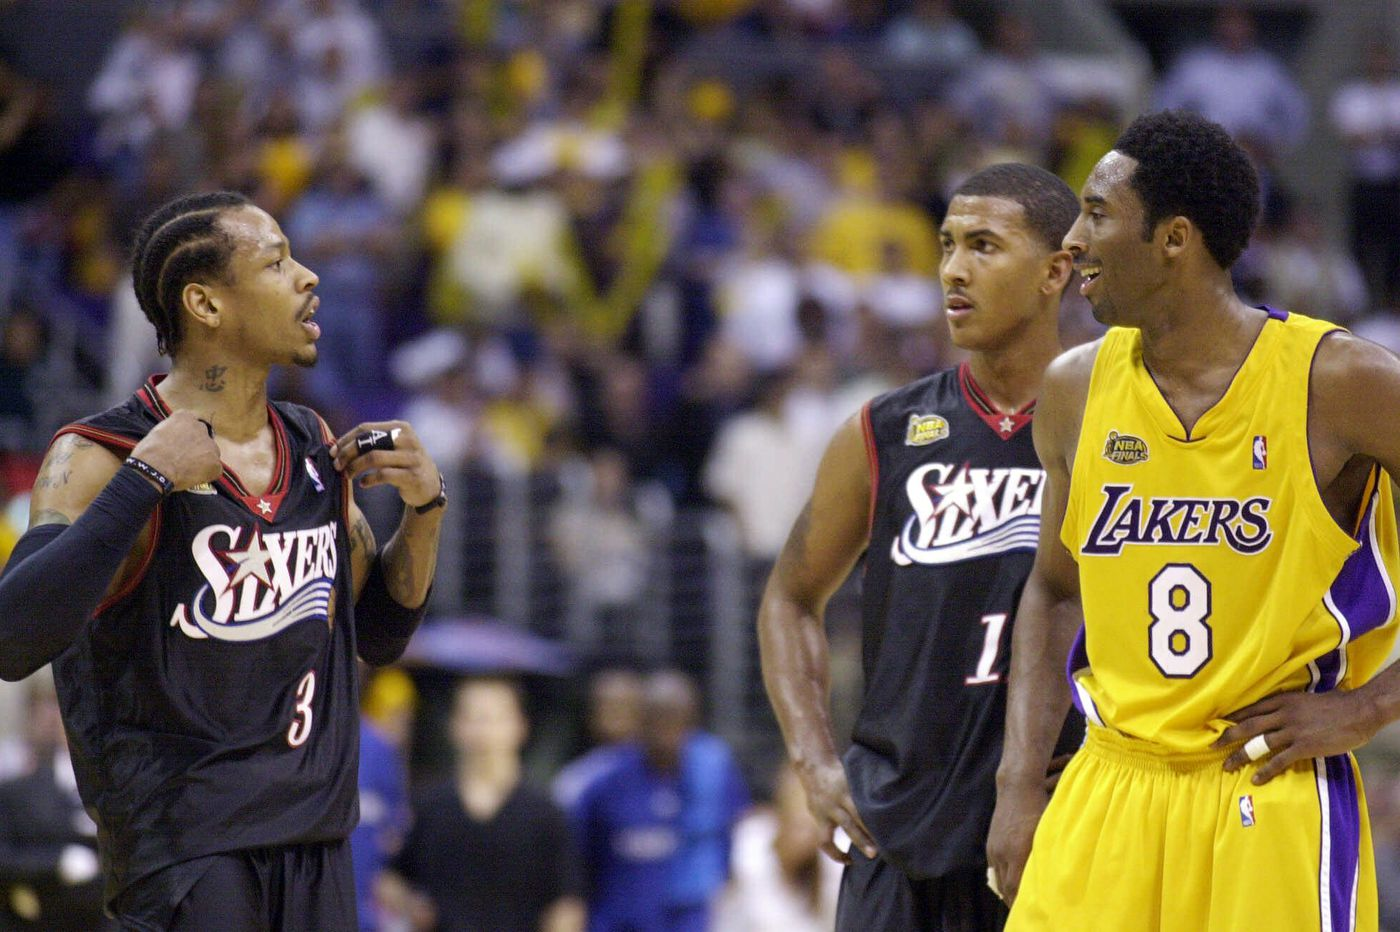 Allen Iverson pens tribute to Kobe Bryant, Earl Thomas reportedly 'not well-liked' by teammates, and more sports news